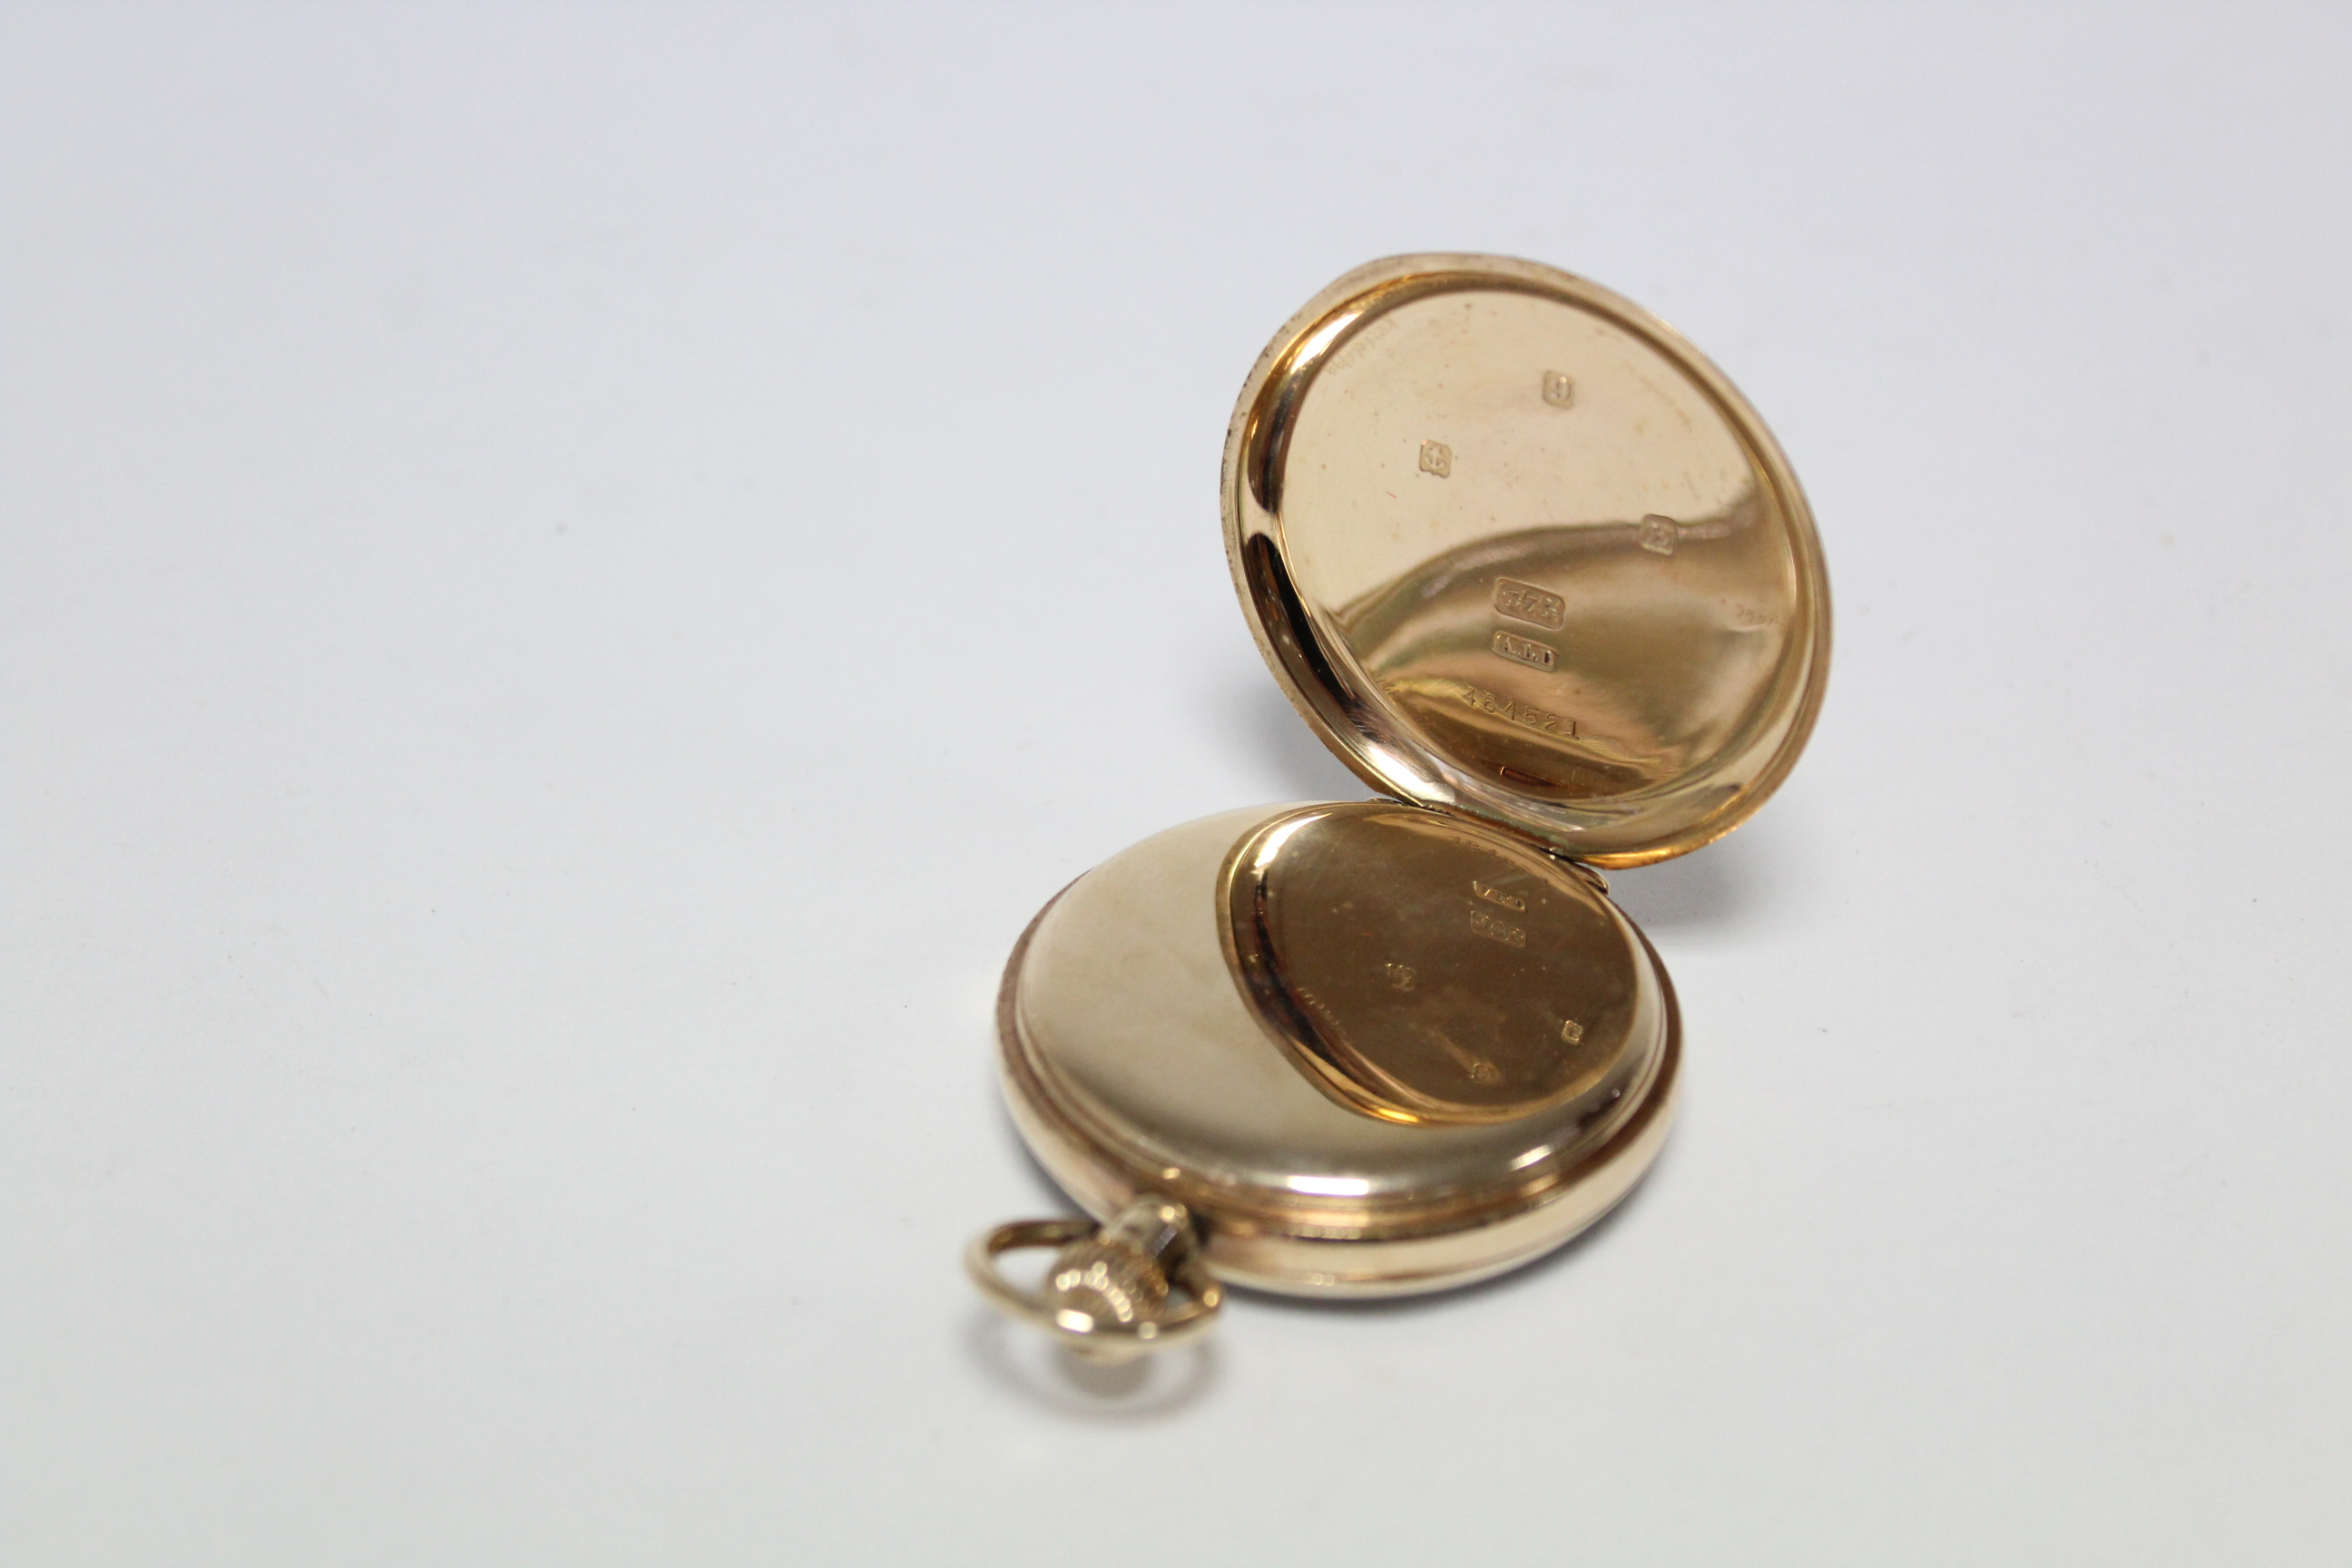 A 9ct. gold cased gent's open-face pocket watch, the white enamel dial with black roman numerals & - Image 4 of 7